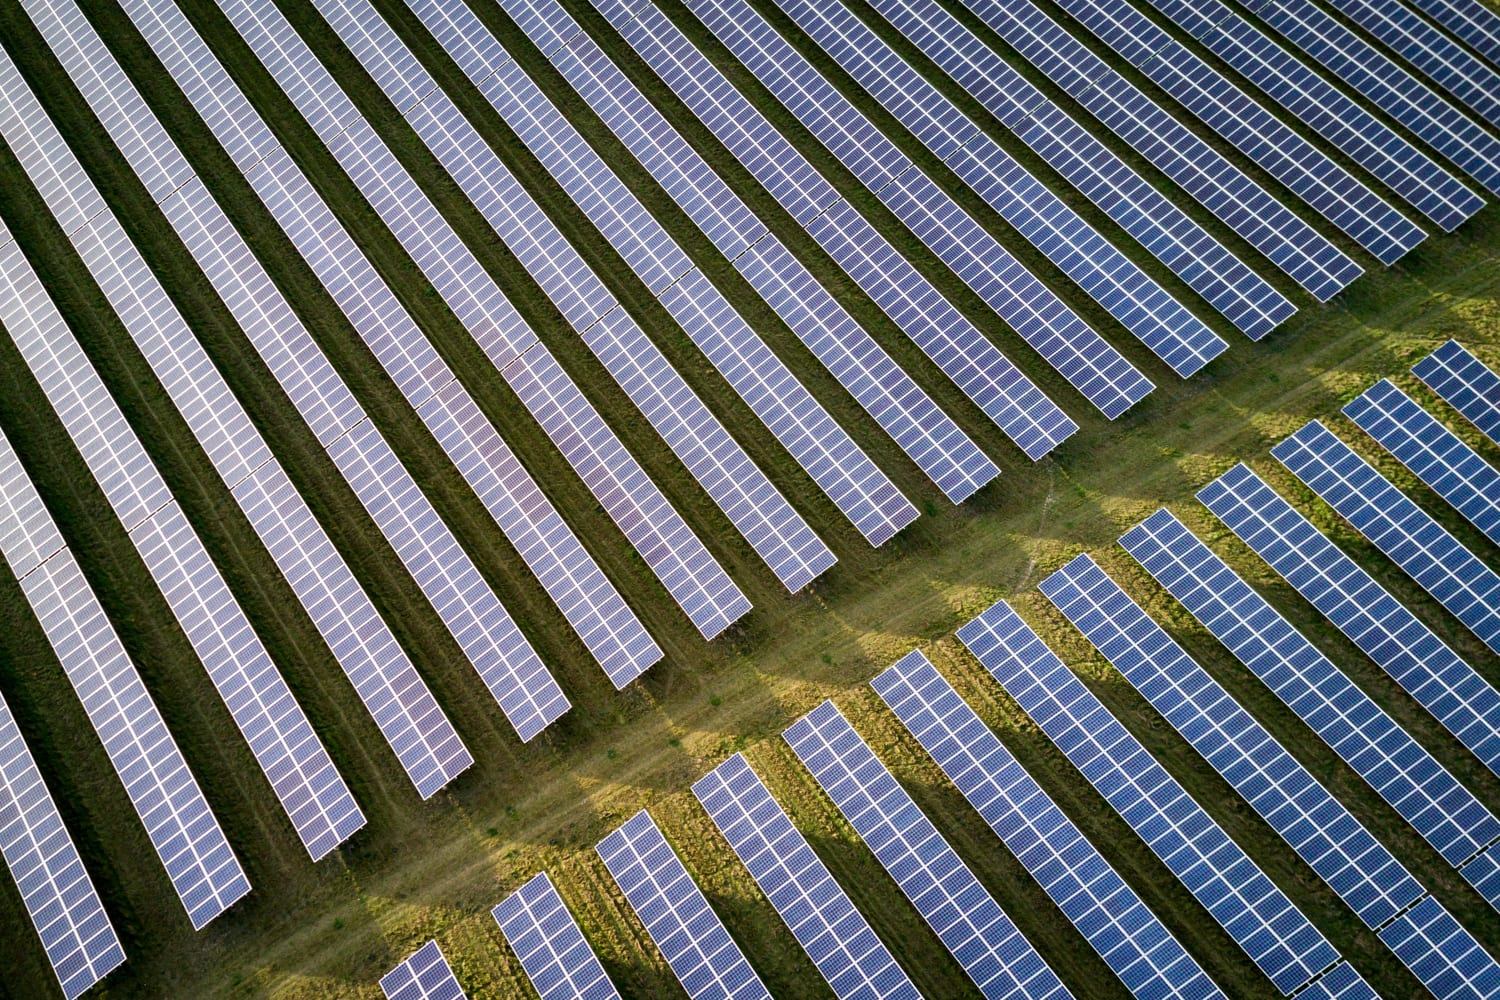 ground mounted solar project over green grass